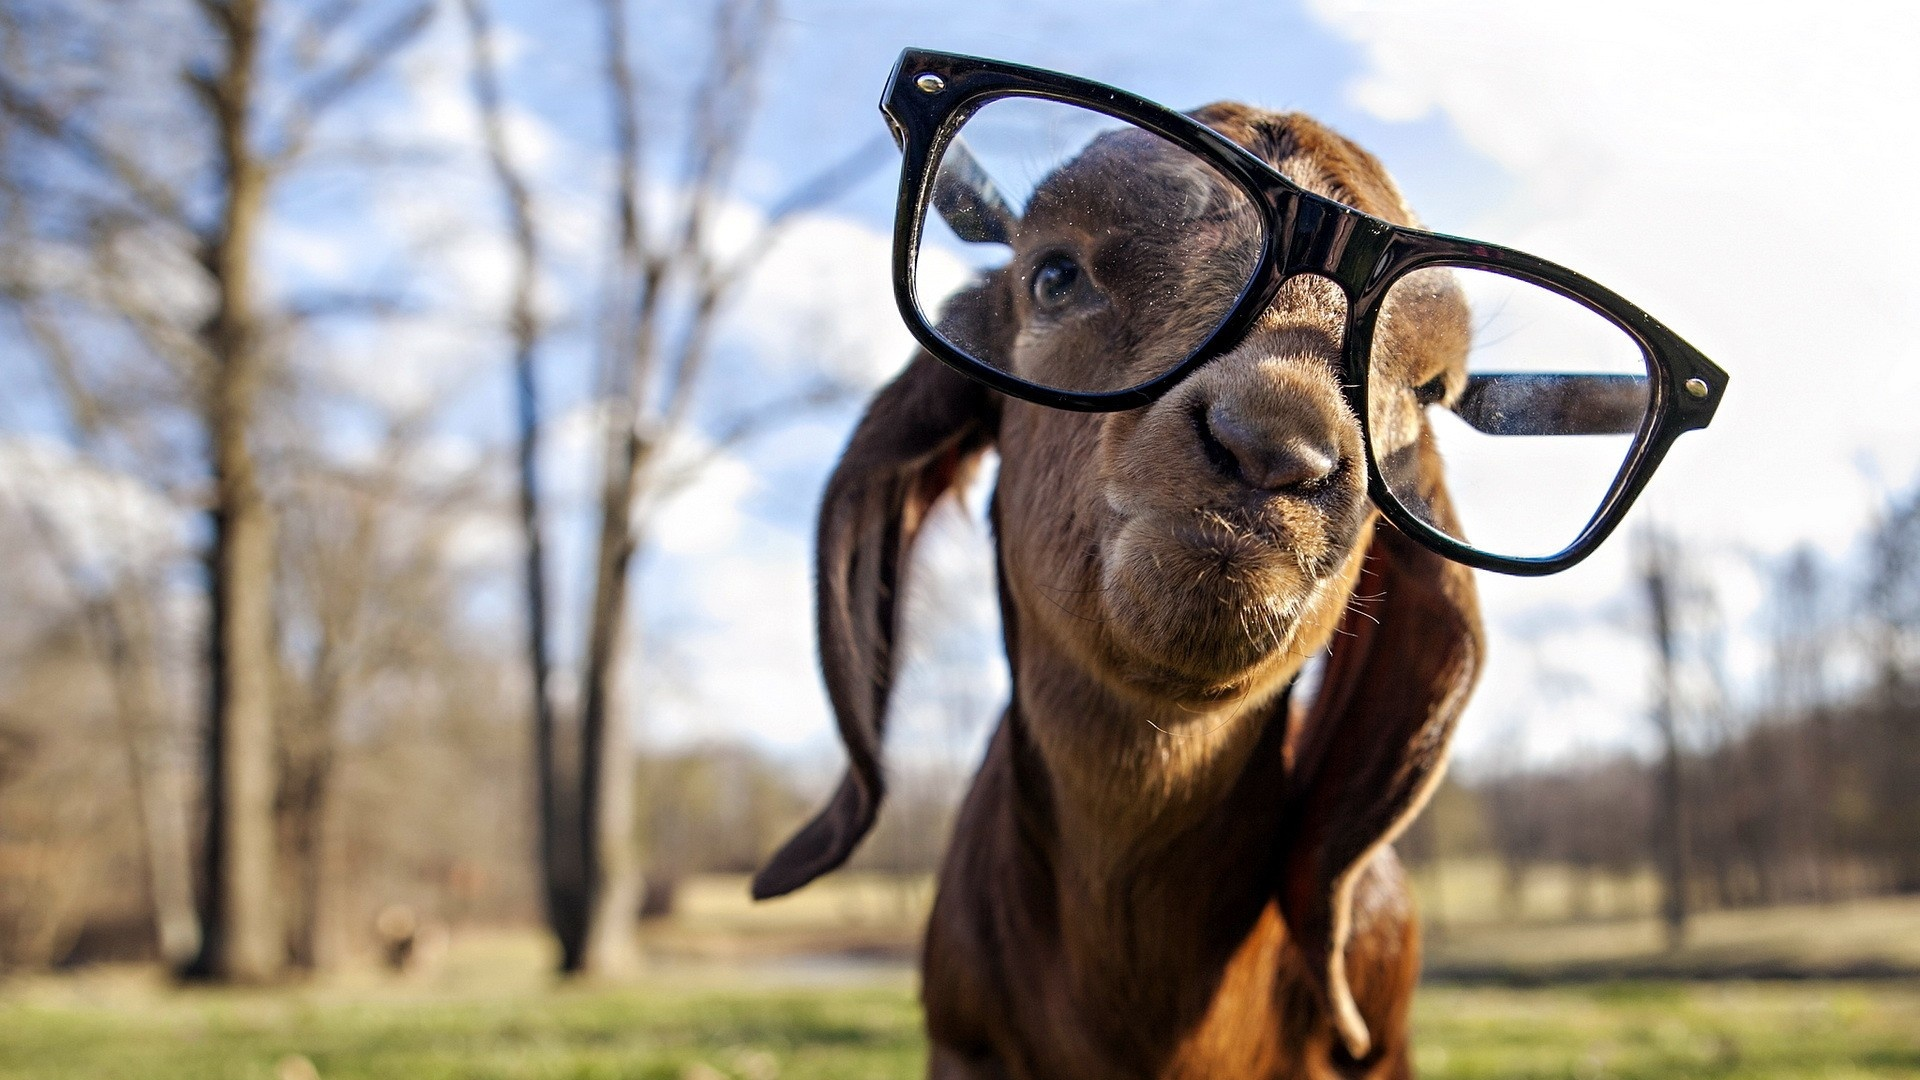 Description: The Wallpaper above is Goat with glasses Wallpaper in Resolution 1920x1080. Choose your Resolution and Download Goat with glasses Wallpaper